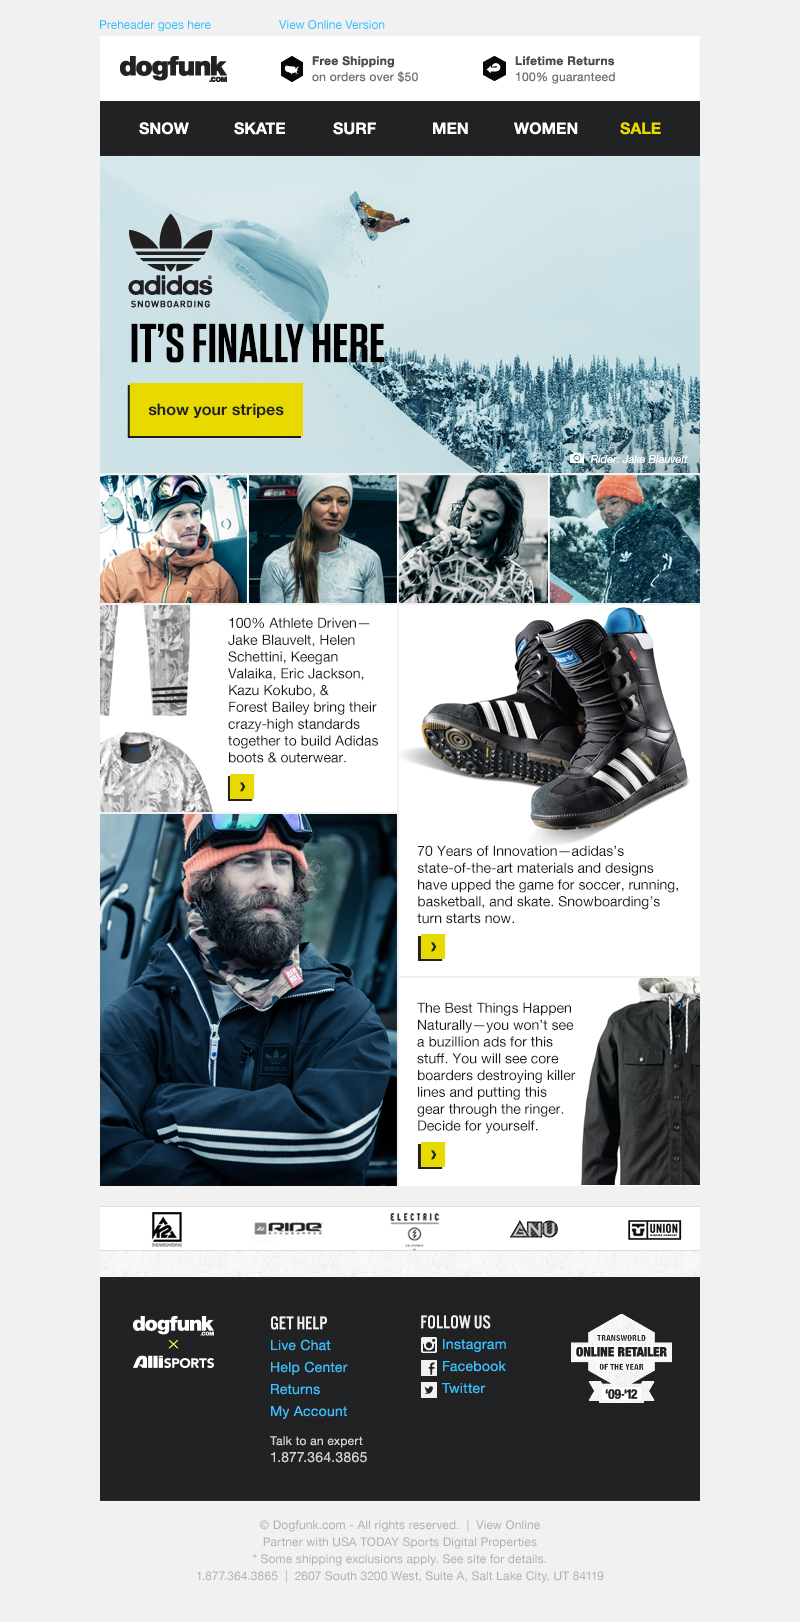 adidas dogfunk email